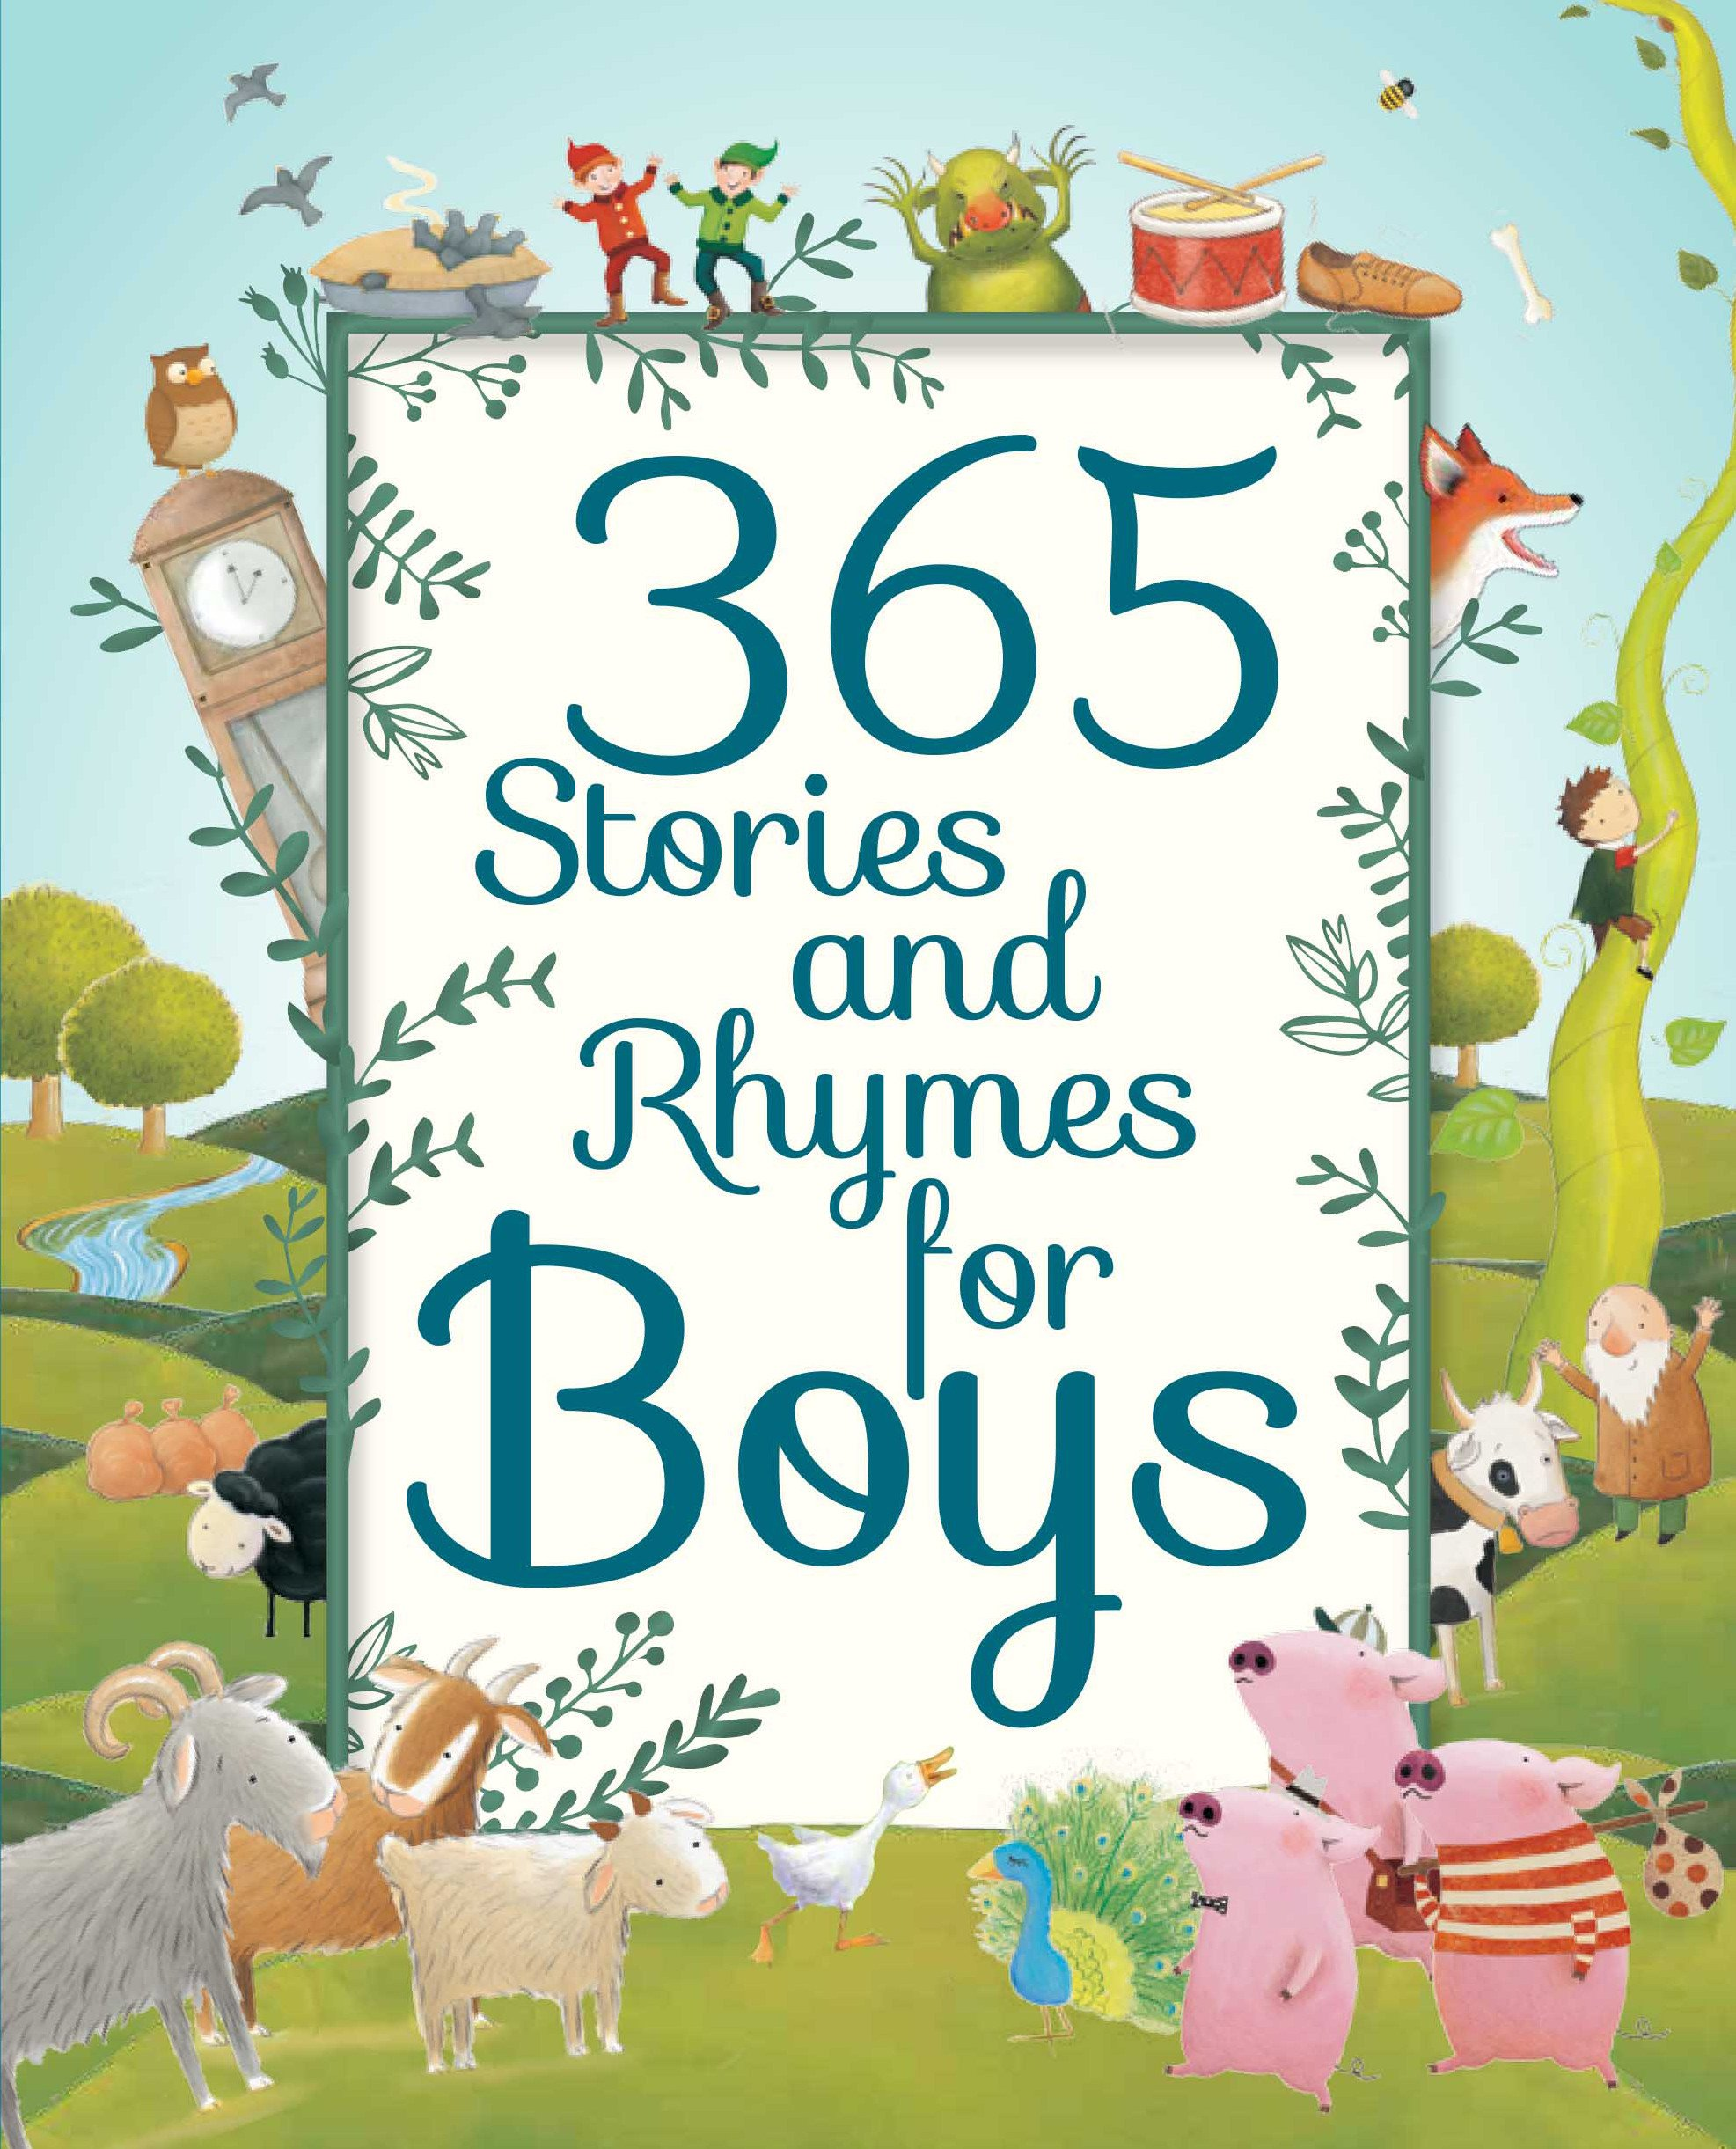 365 Stories and Rhymes for Boys (Deluxe 365 Stories) pdf epub